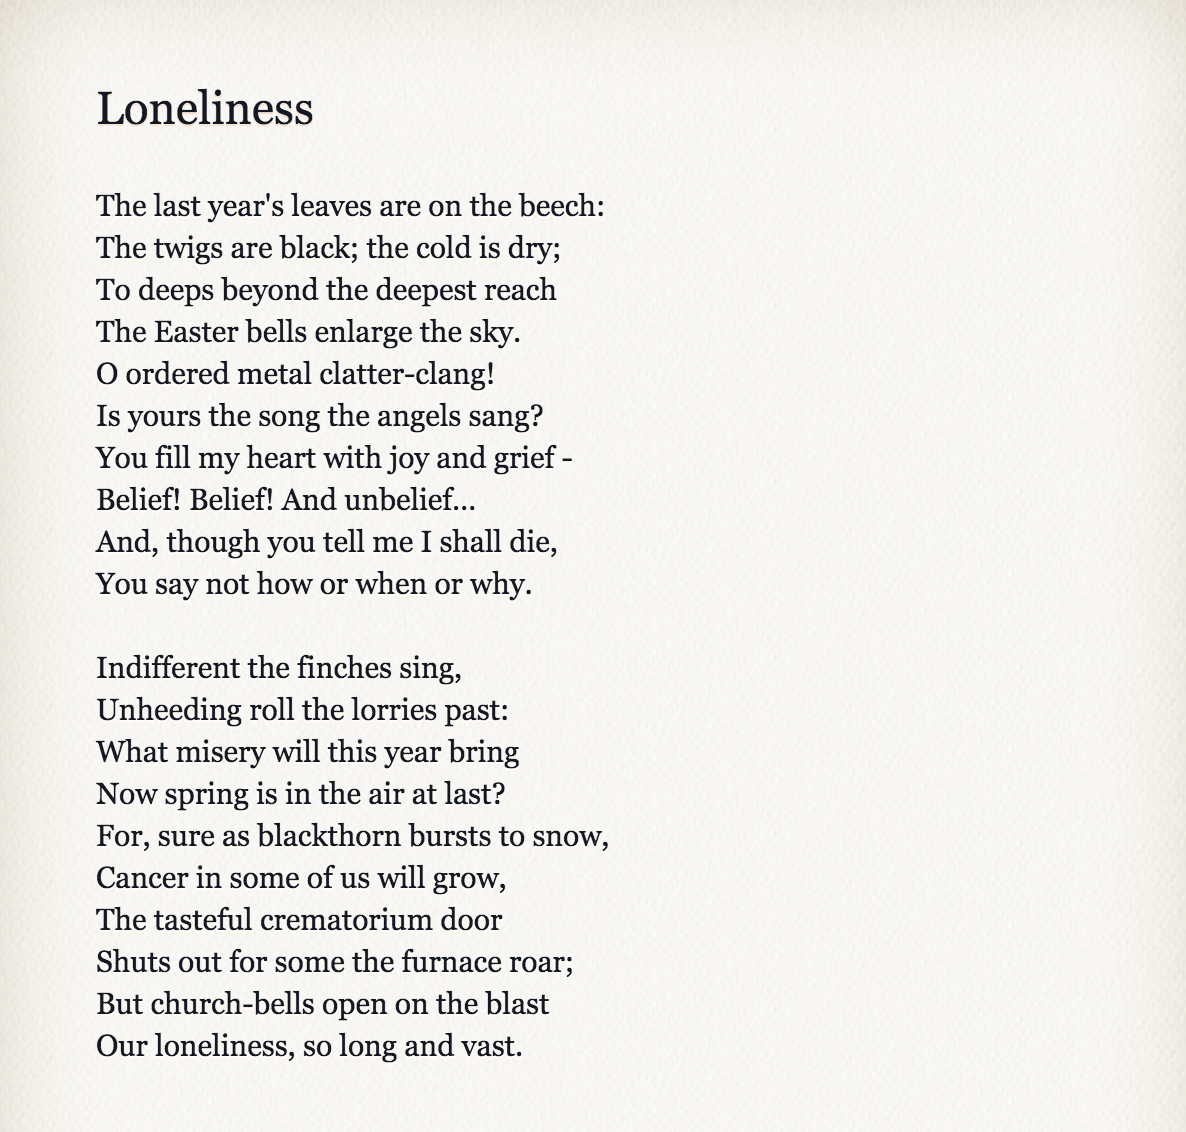 essay poem loneliness summary She was smart, she wrote poems, she was funny and frank in class i knew she lived in a dormitory near my house, so one night i asked her to housesit while i attended an hour-long meeting.